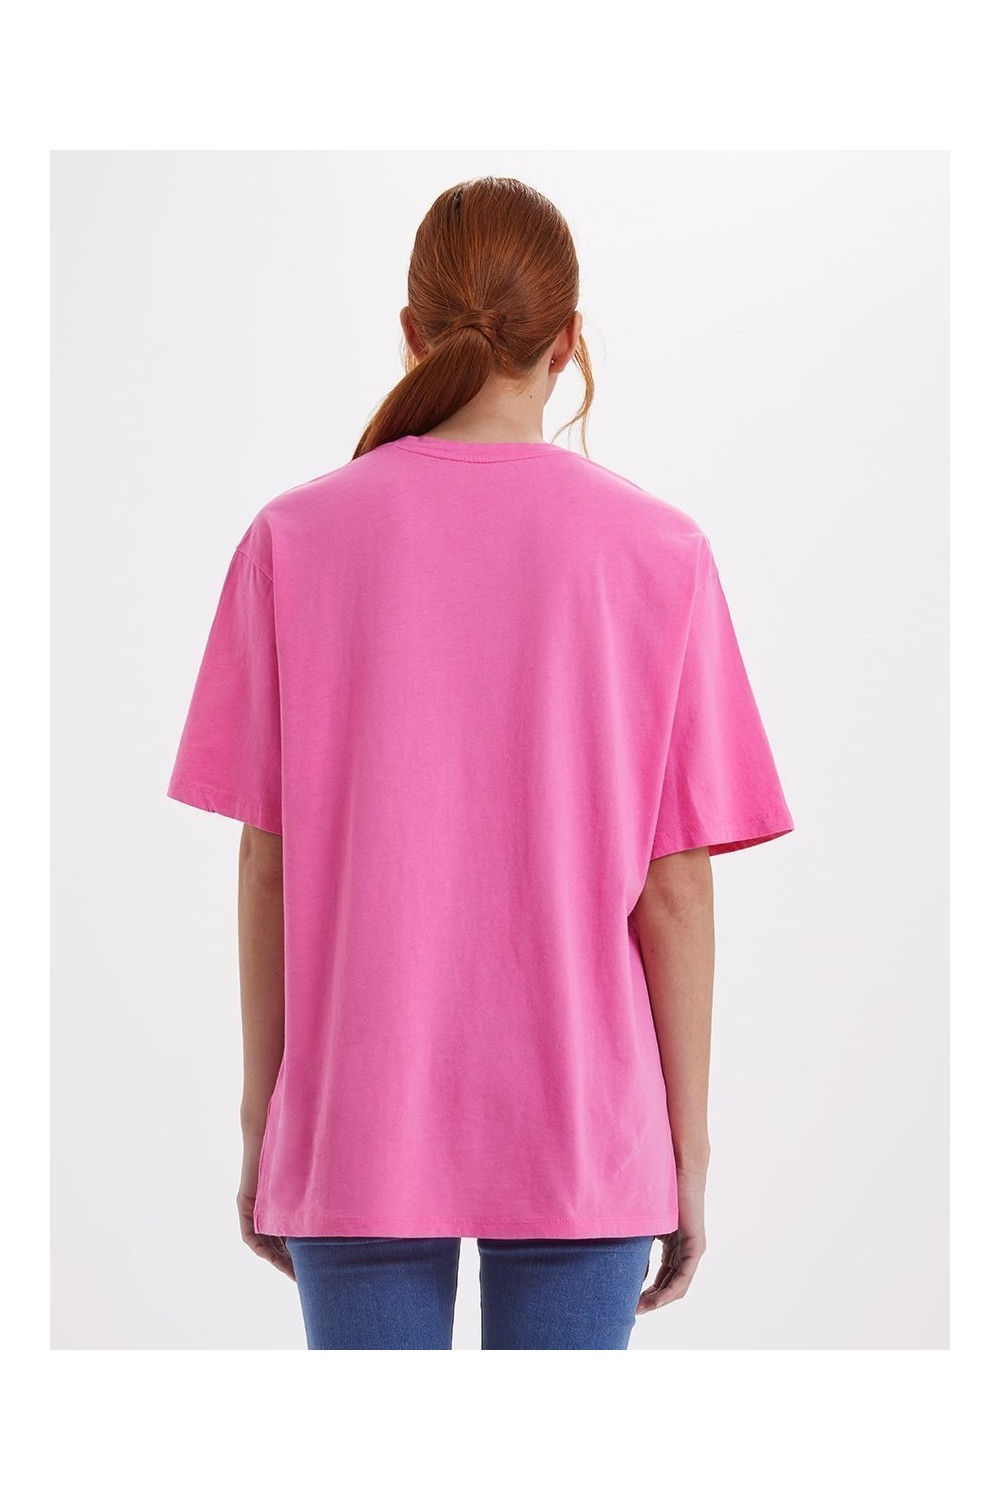 Loft Women's Printed T-Shirt 2019499